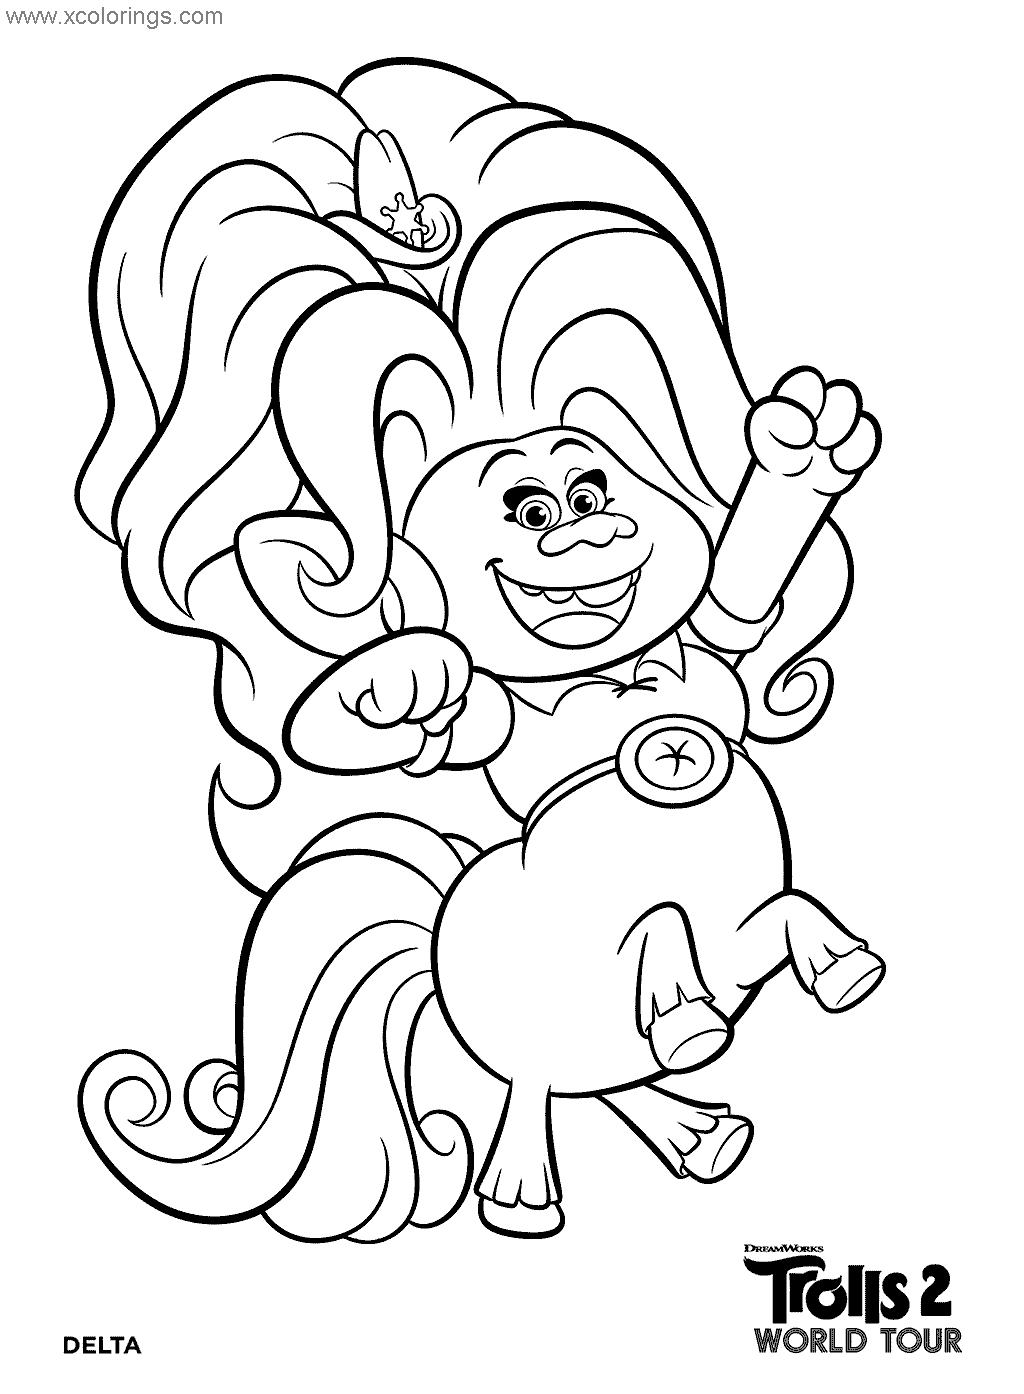 Delta From Trolls World Tour Coloring Pages Monster Coloring Pages Poppy Coloring Page Coloring Pages